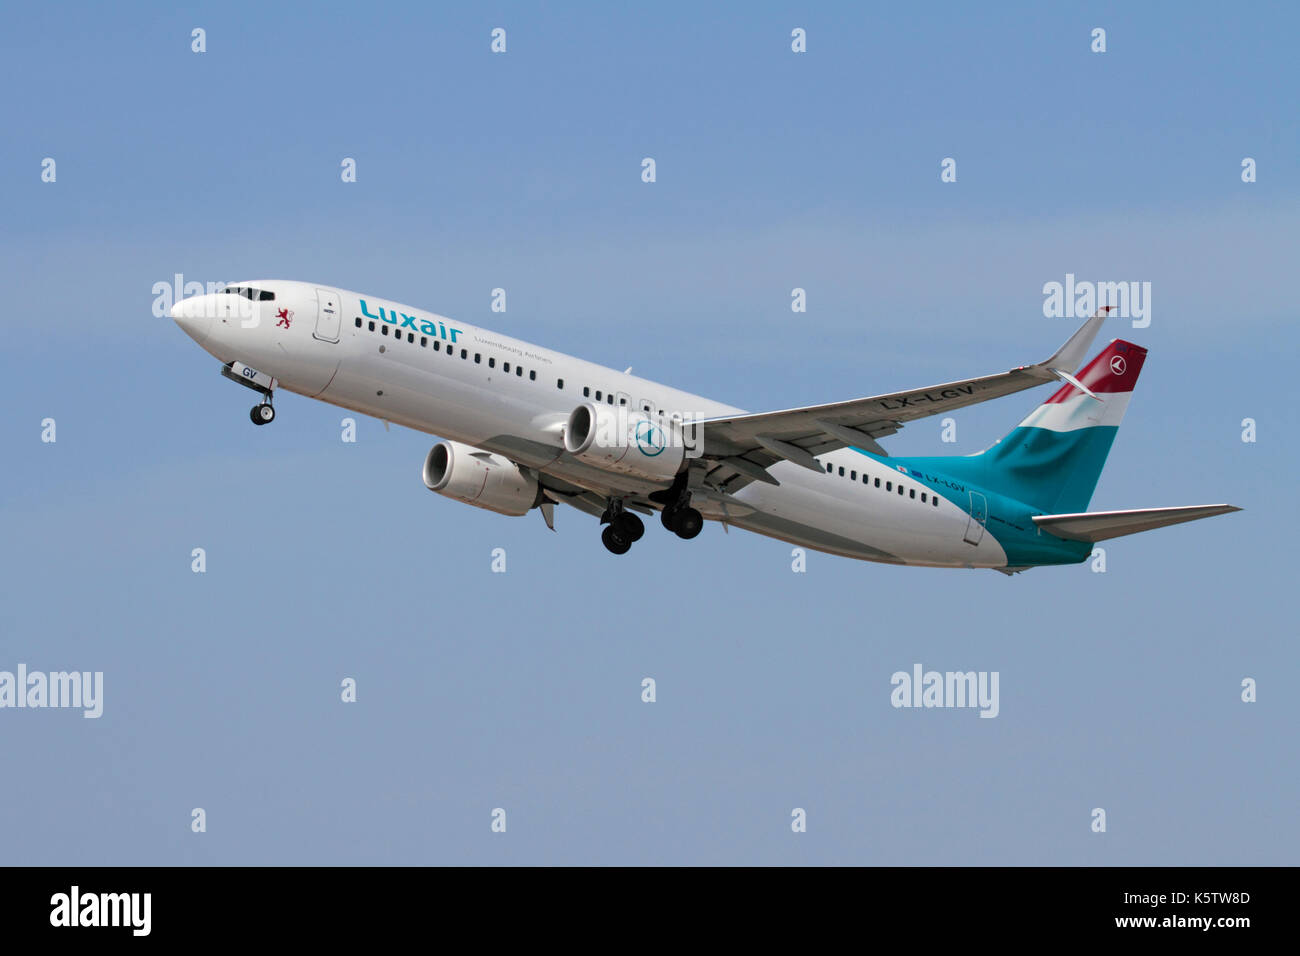 Commercial air travel. Luxair Luxembourg Airlines Boeing 737-800 passenger jet plane on takeoff - Stock Image